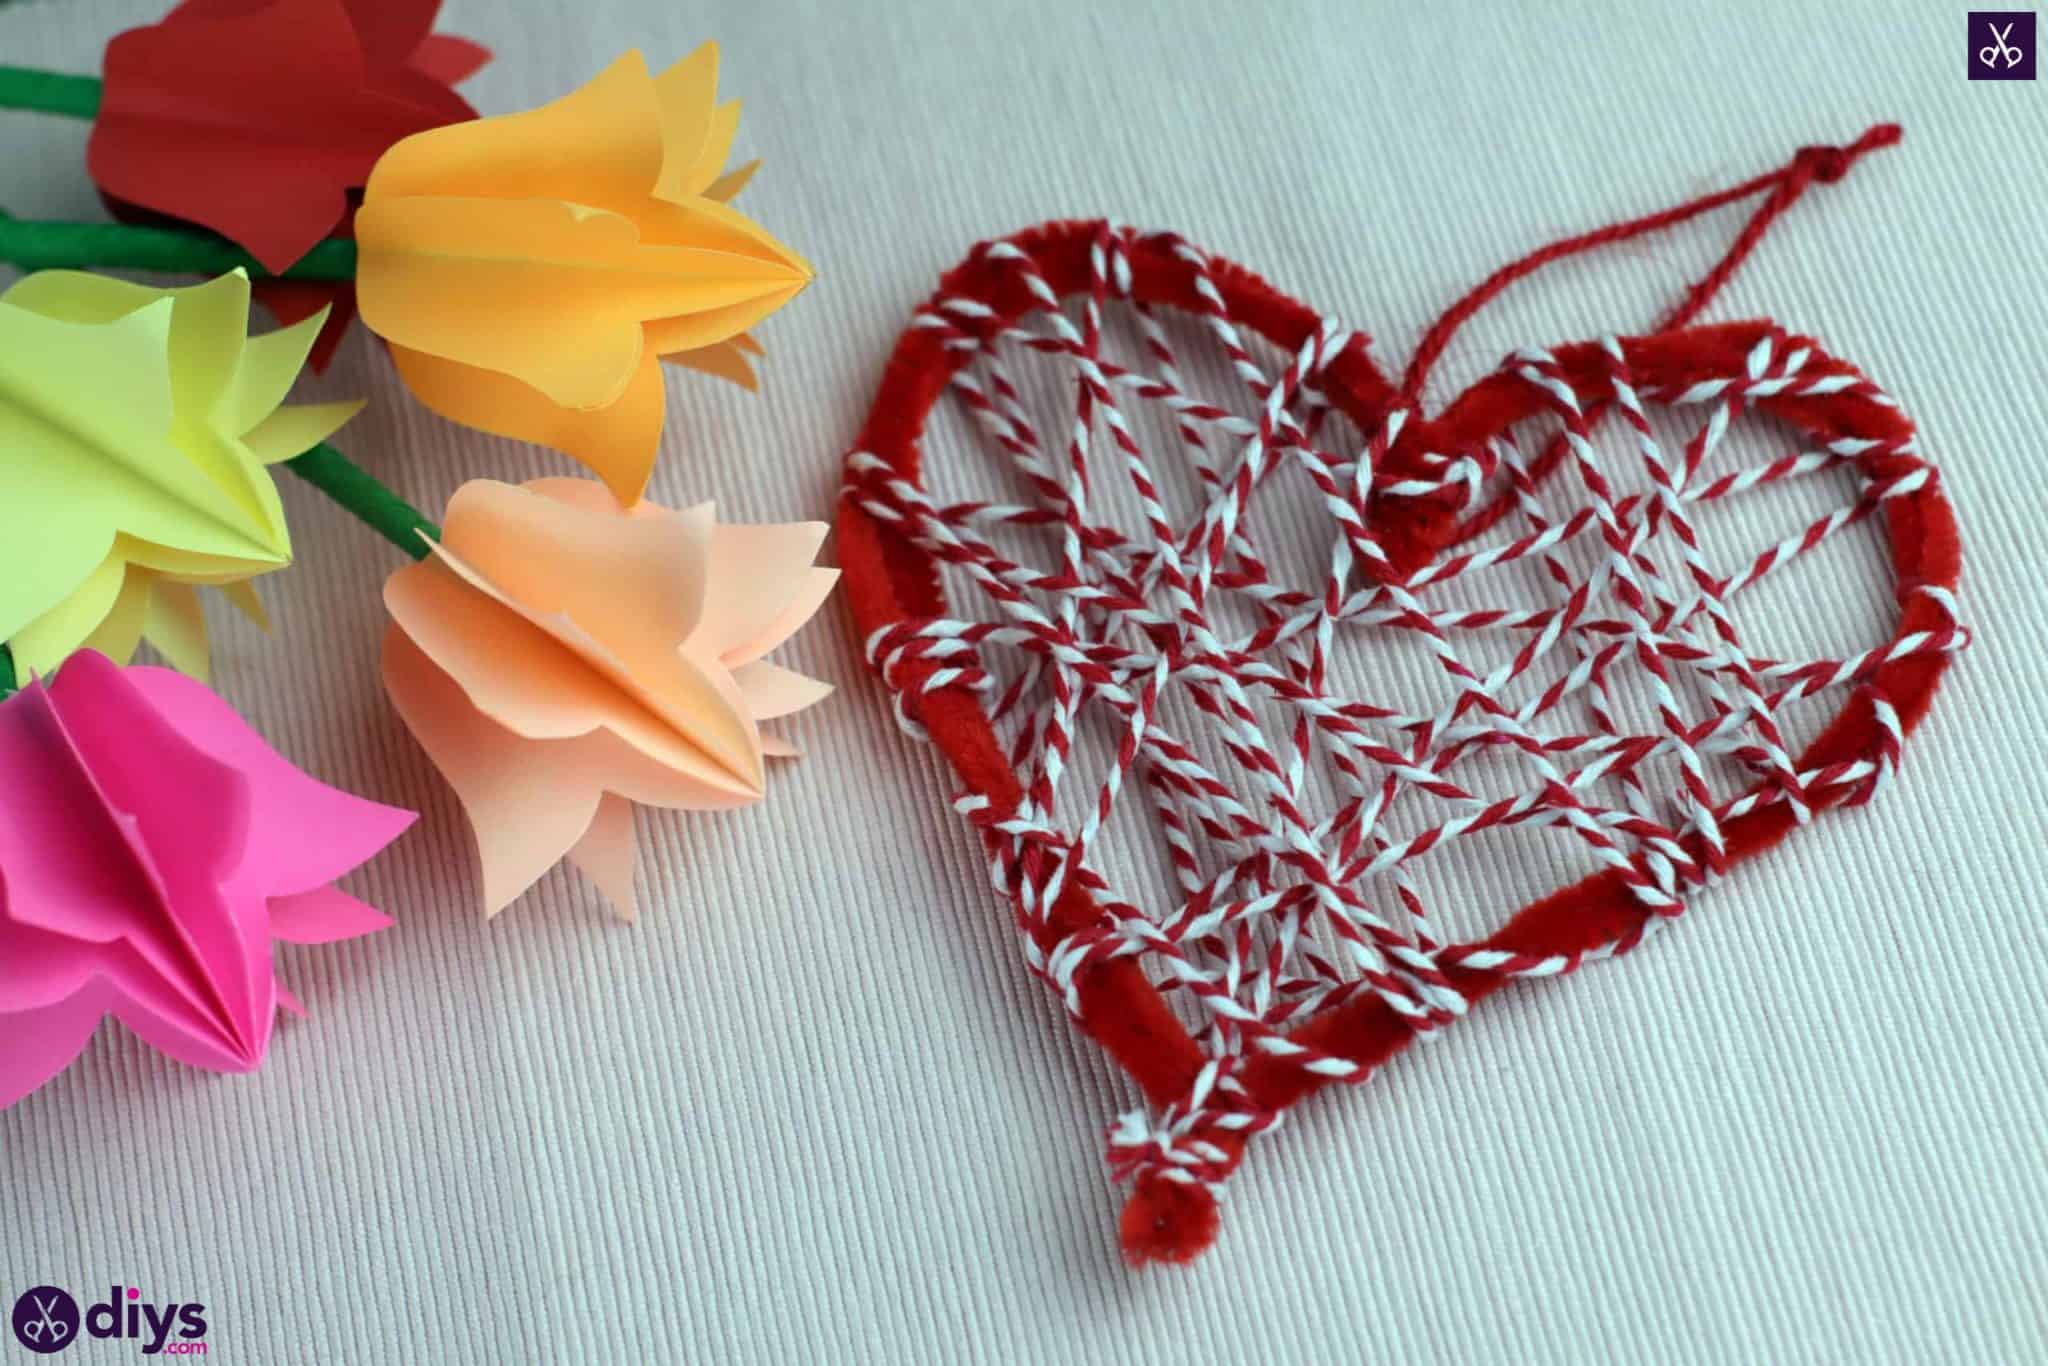 Diy hanging heart wall decor red